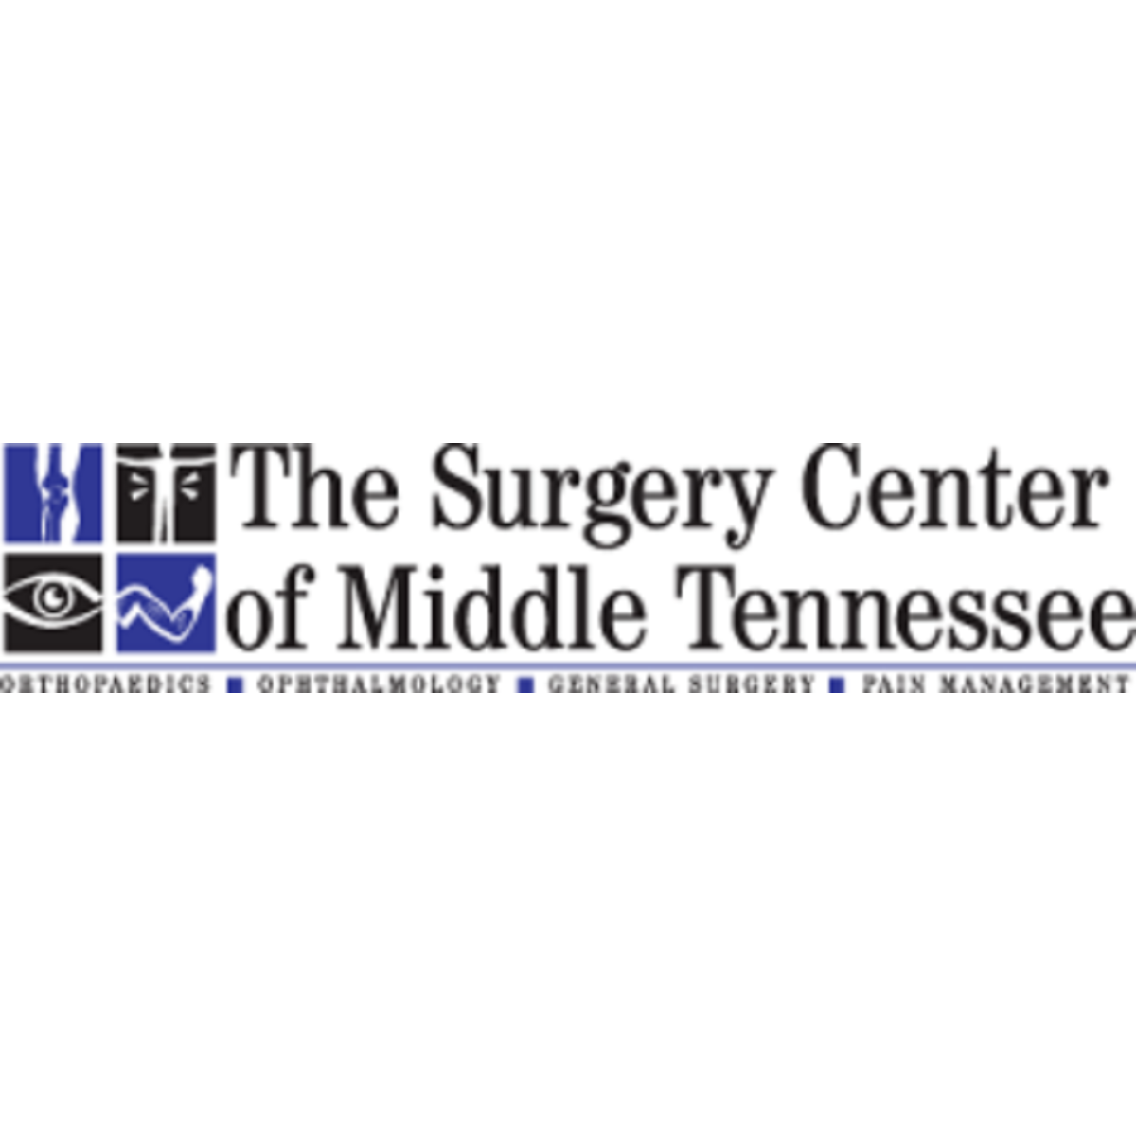 The Surgery Center of Middle Tennessee